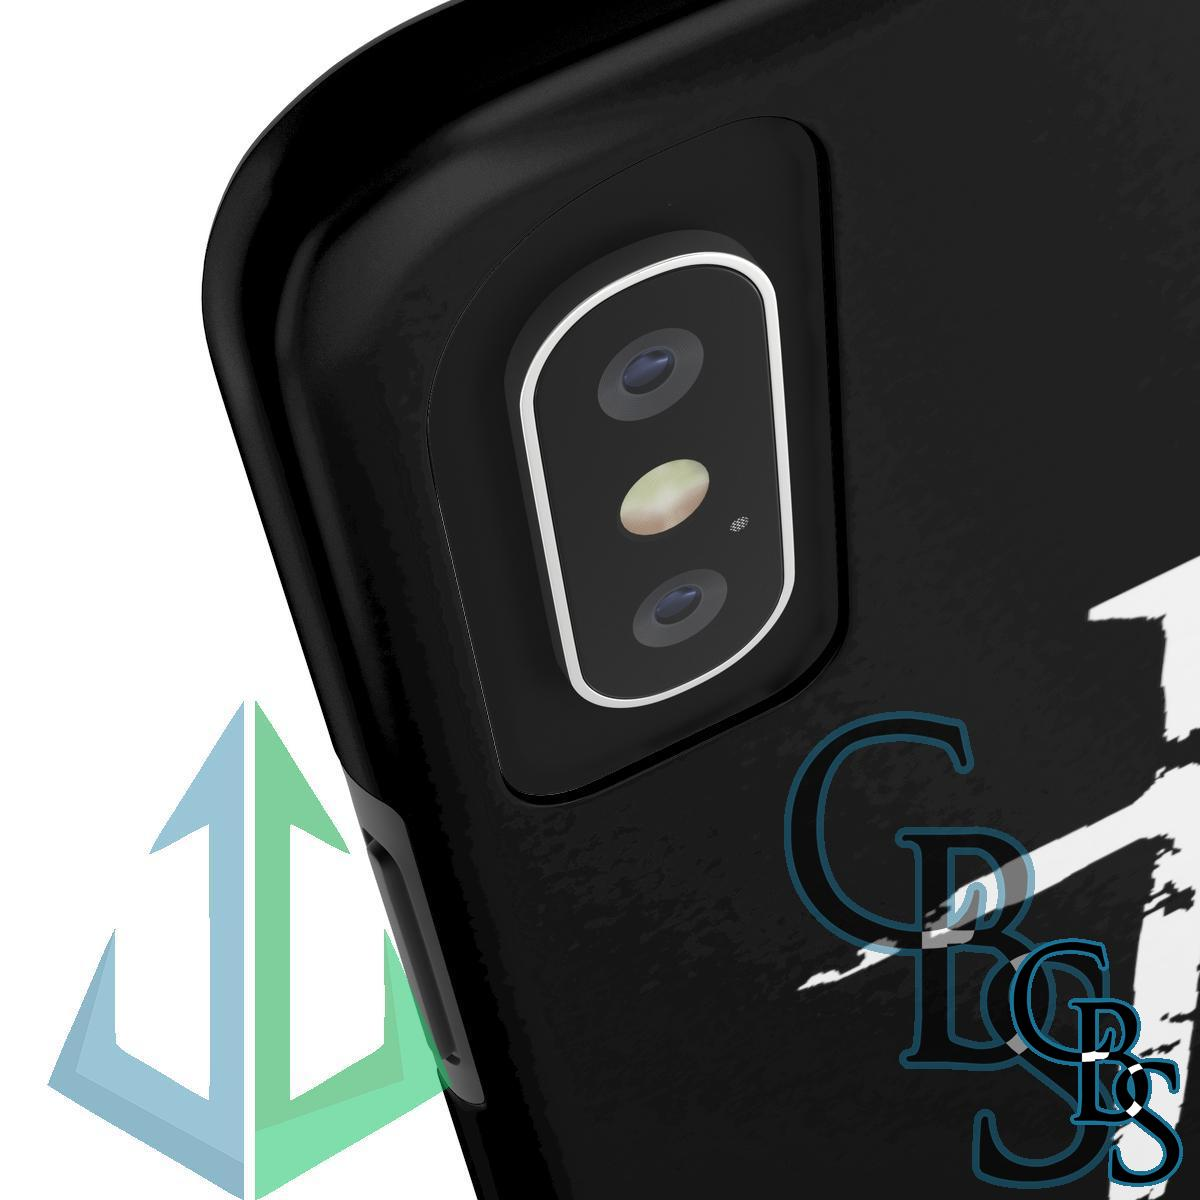 Hilastherion Logo and Cross Tough iPhone Cases (iPhone 7/7 Plus, iPhone 8/8 Plus, iPhone X, XS, XR, iPhone 11, 11 Pro, 11 Pro Max)